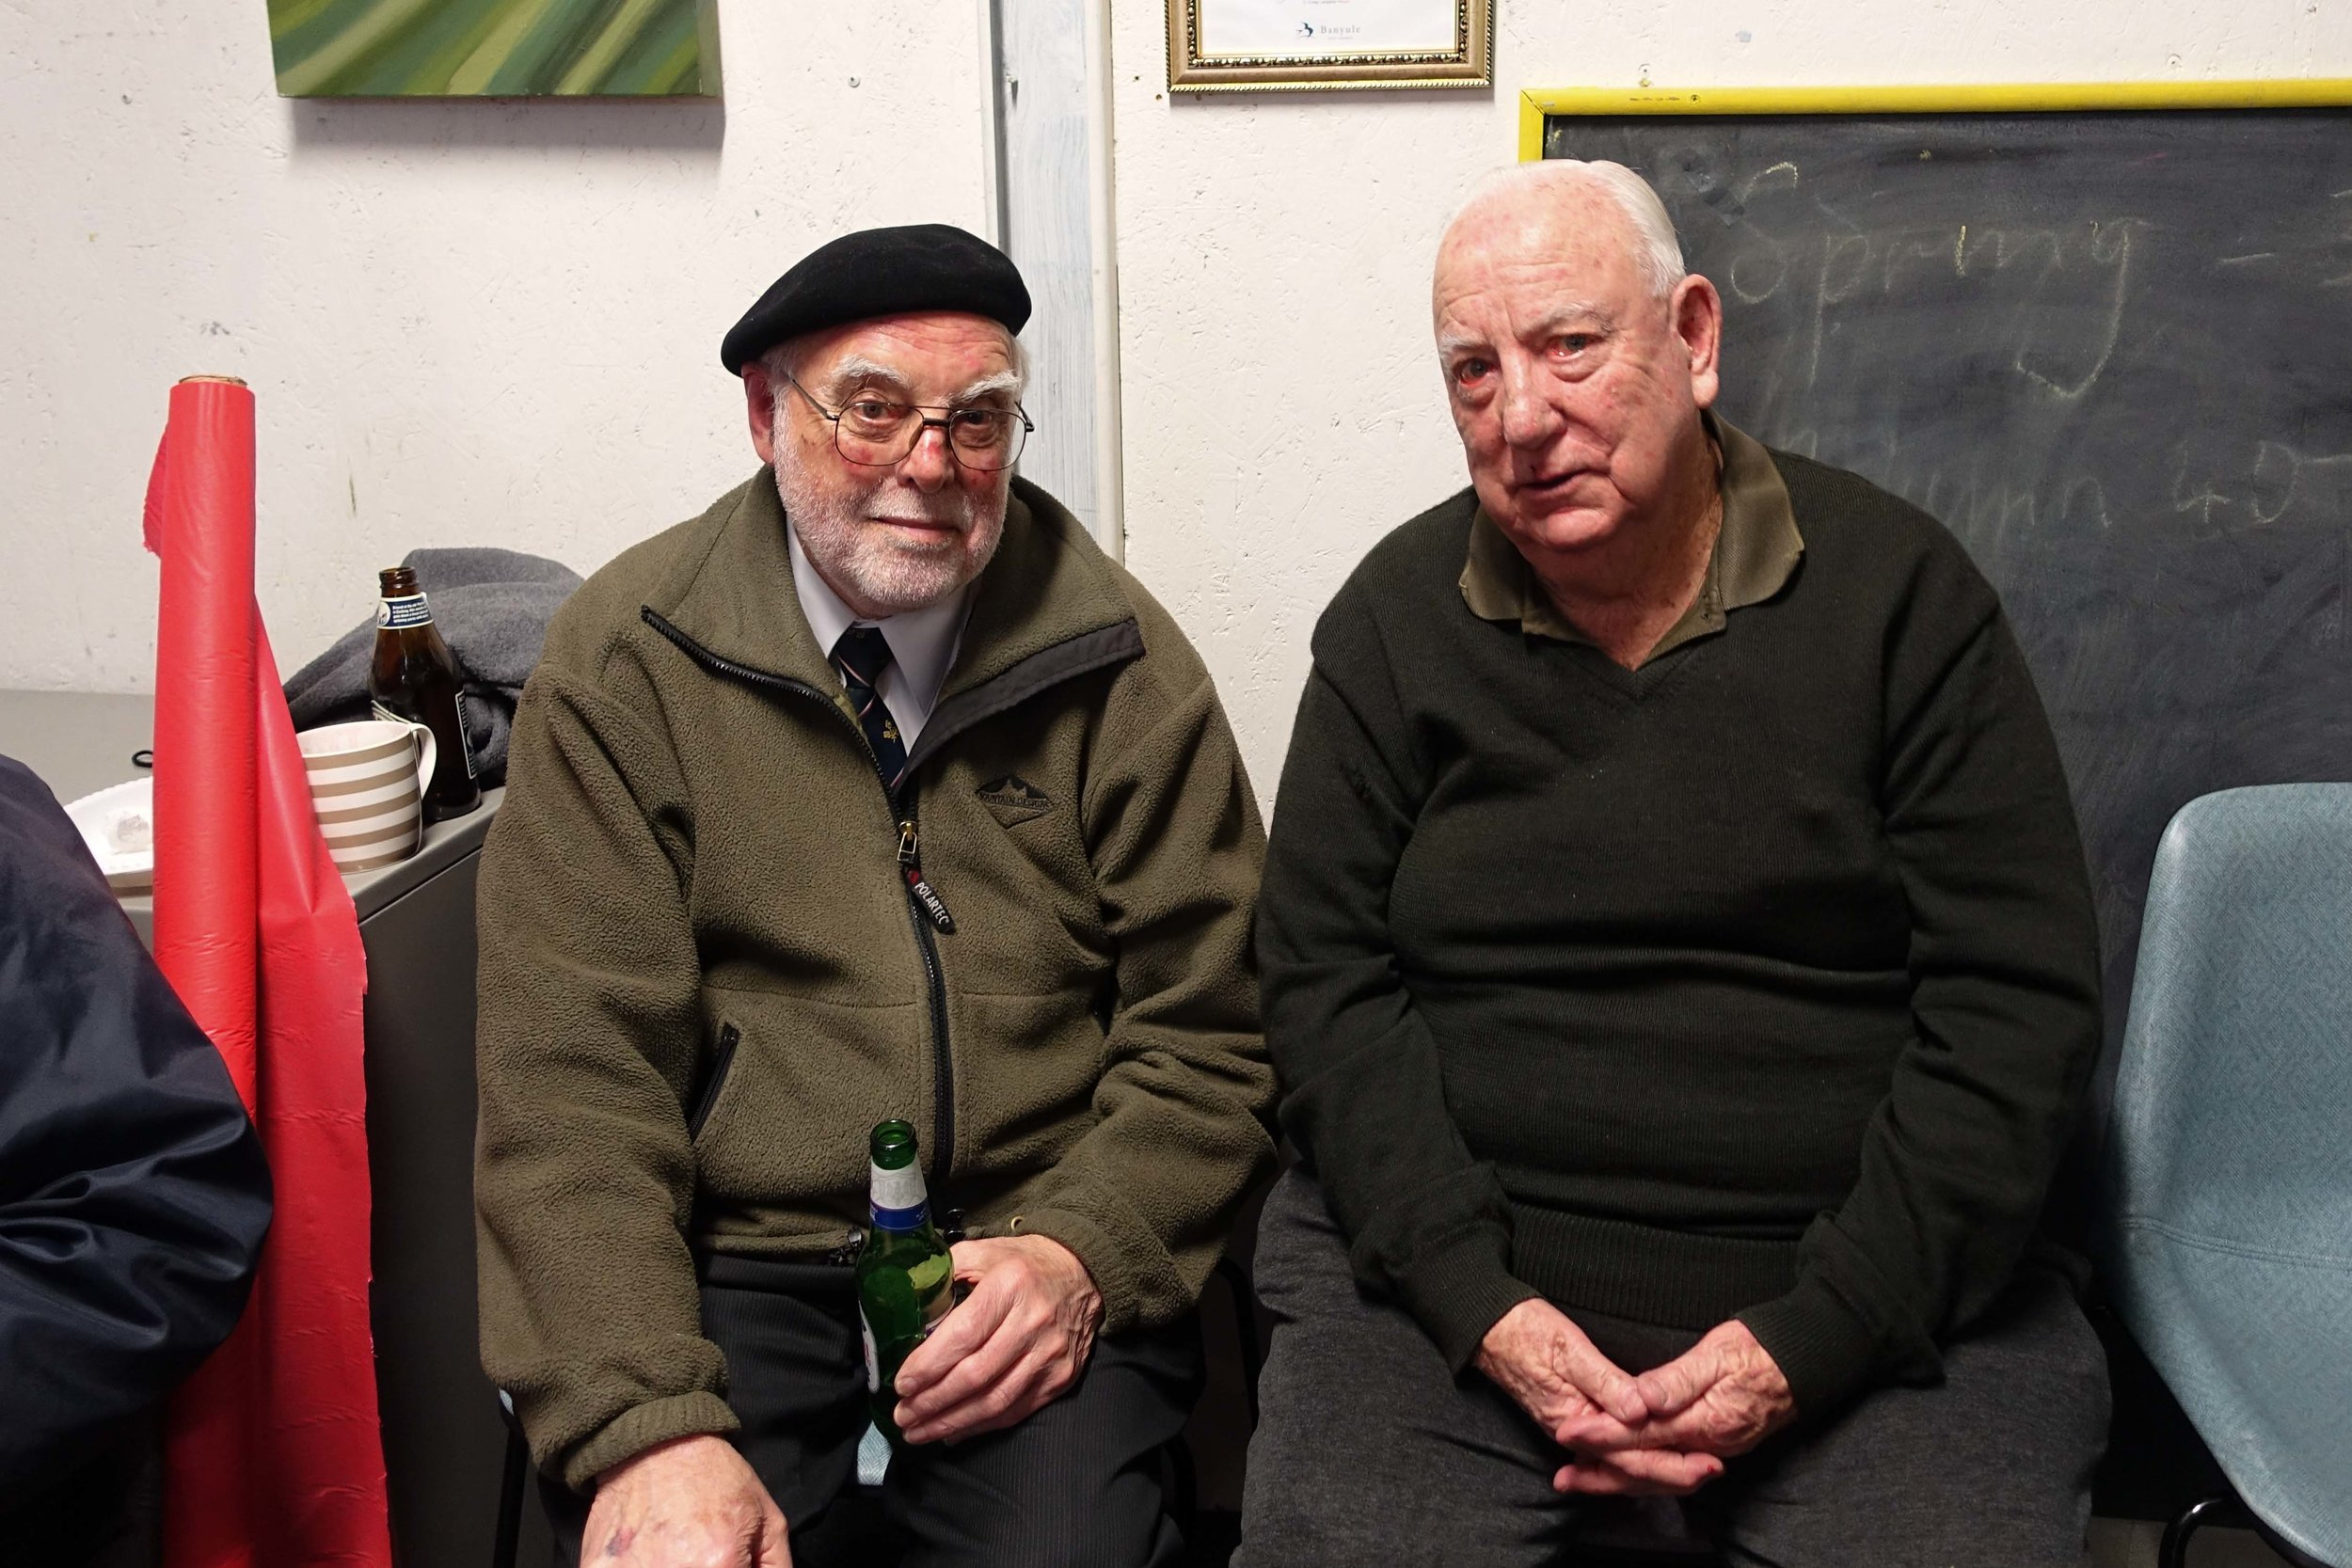 Br. Peter Howes and Br. Bill Dillon